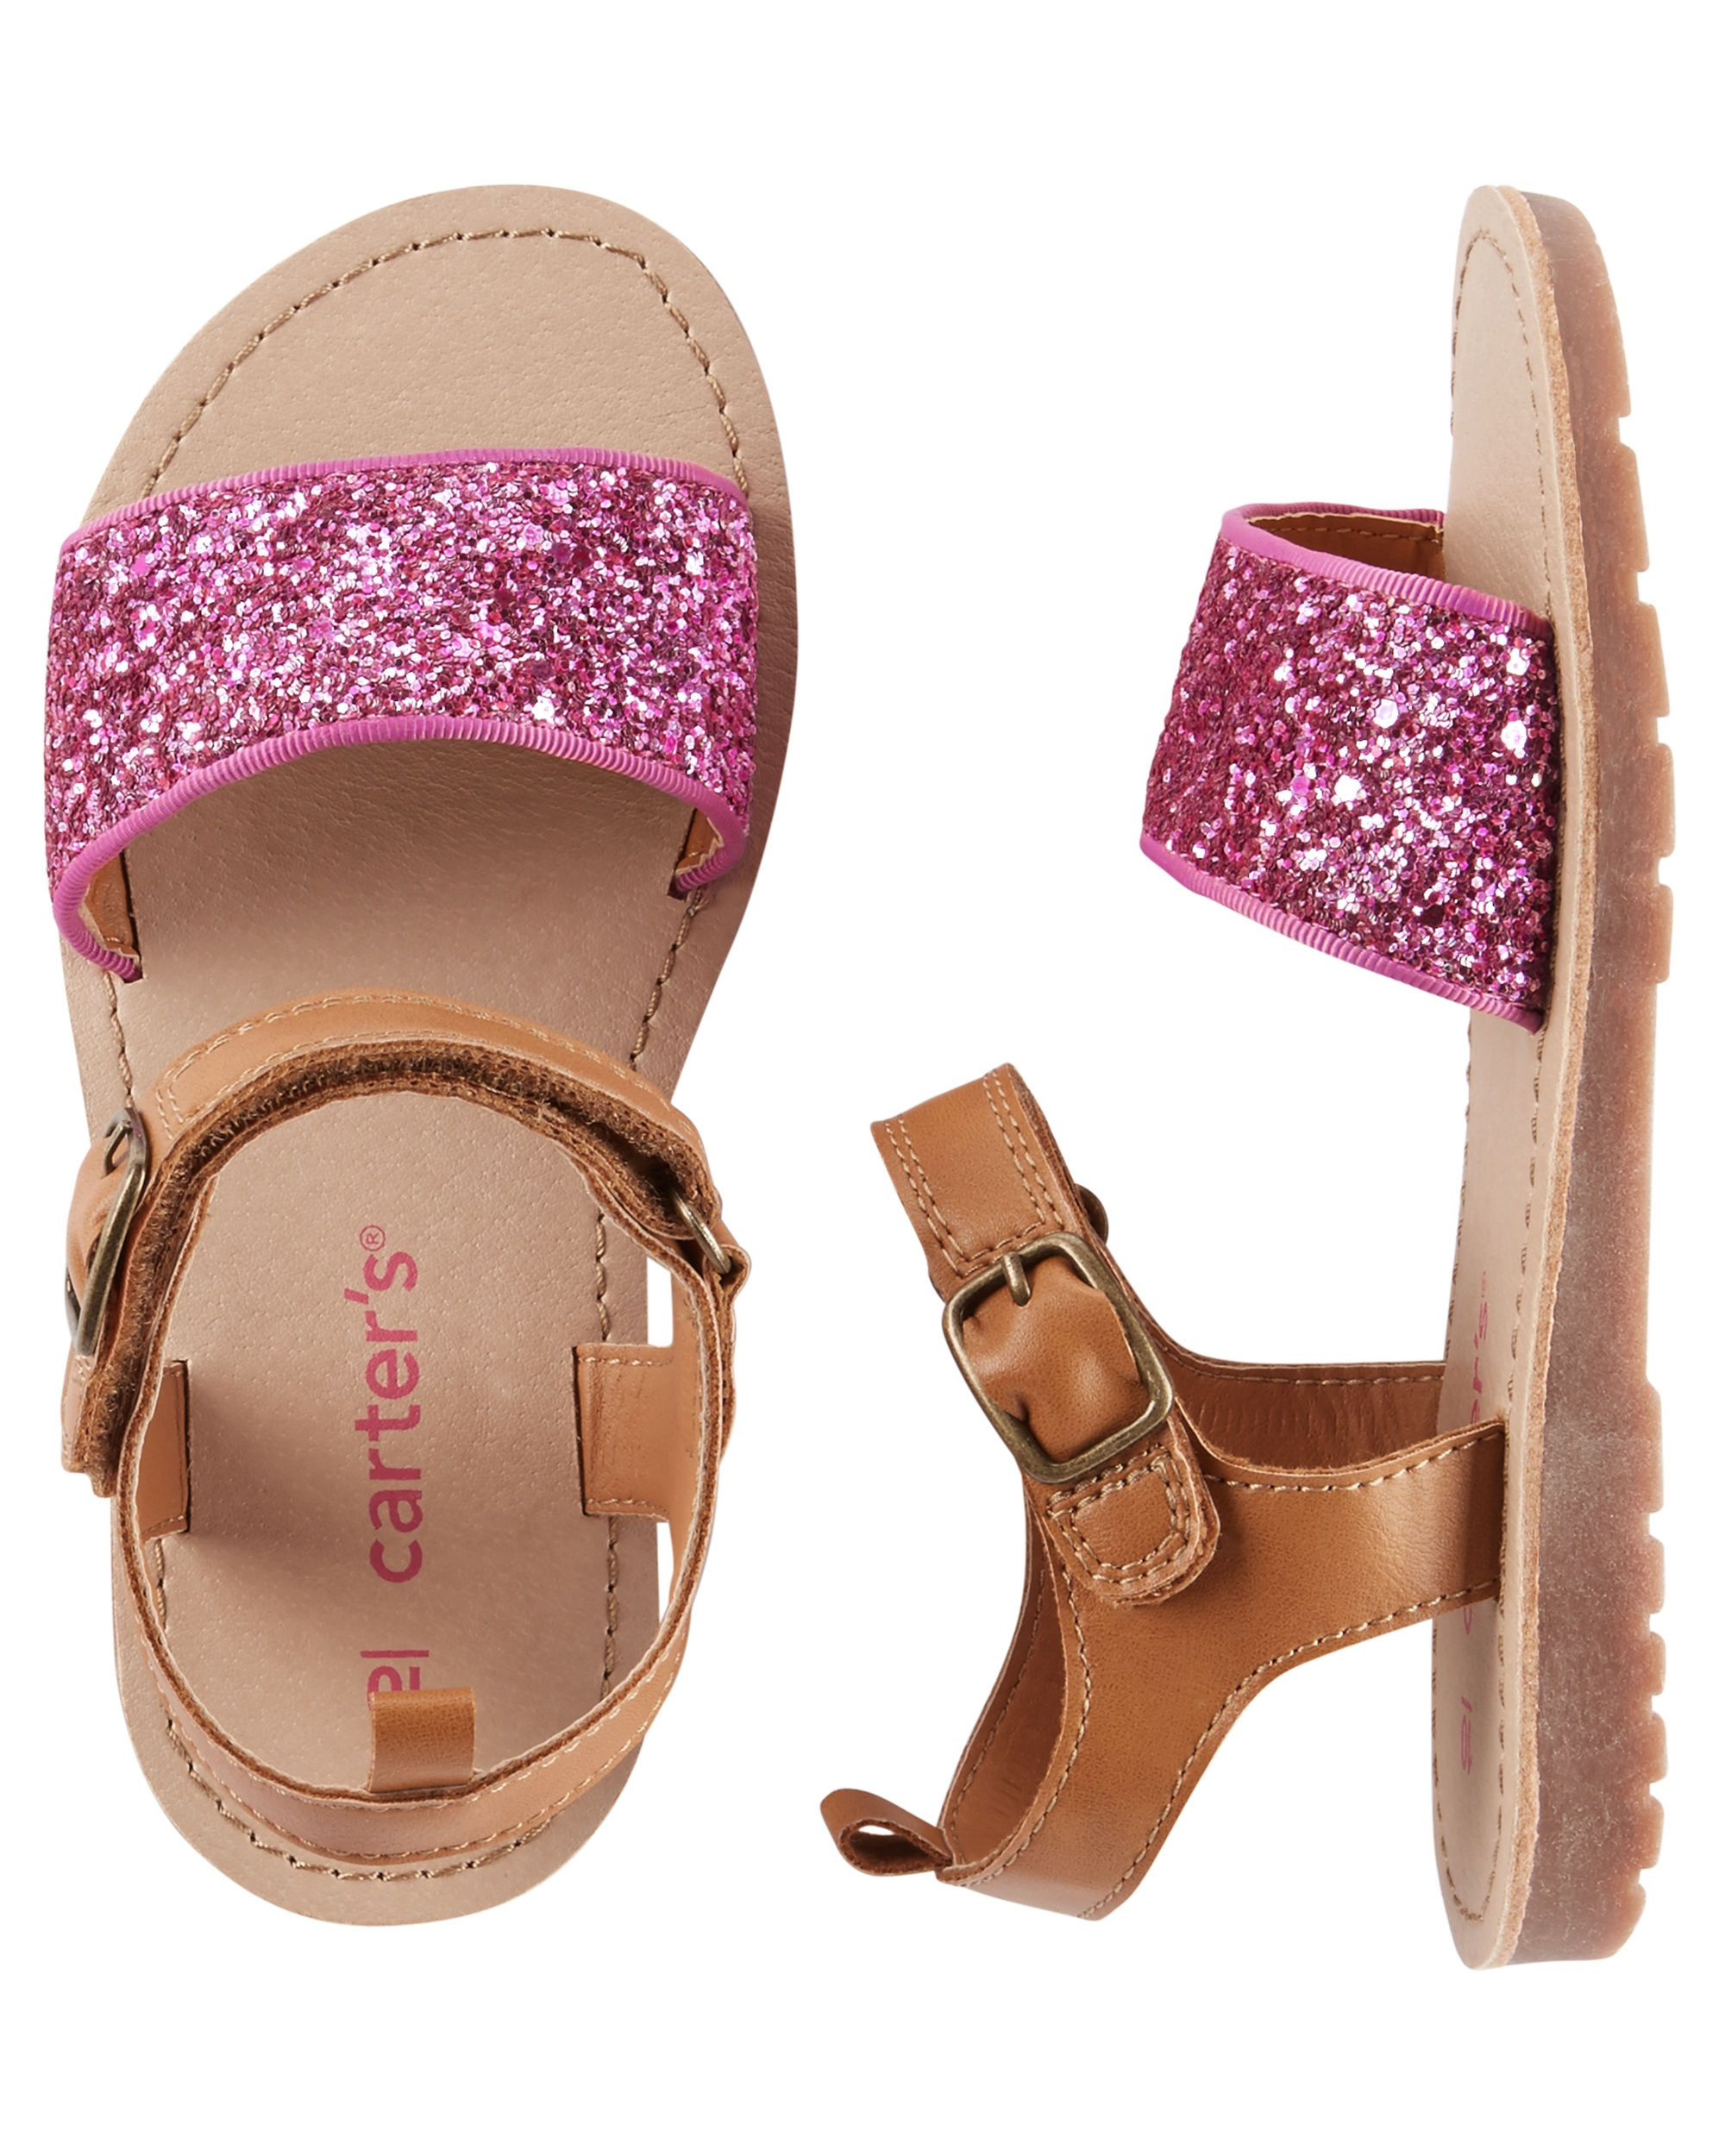 9defd5a23cb995 Kid Girl Carter s Glitter Strap Sandals